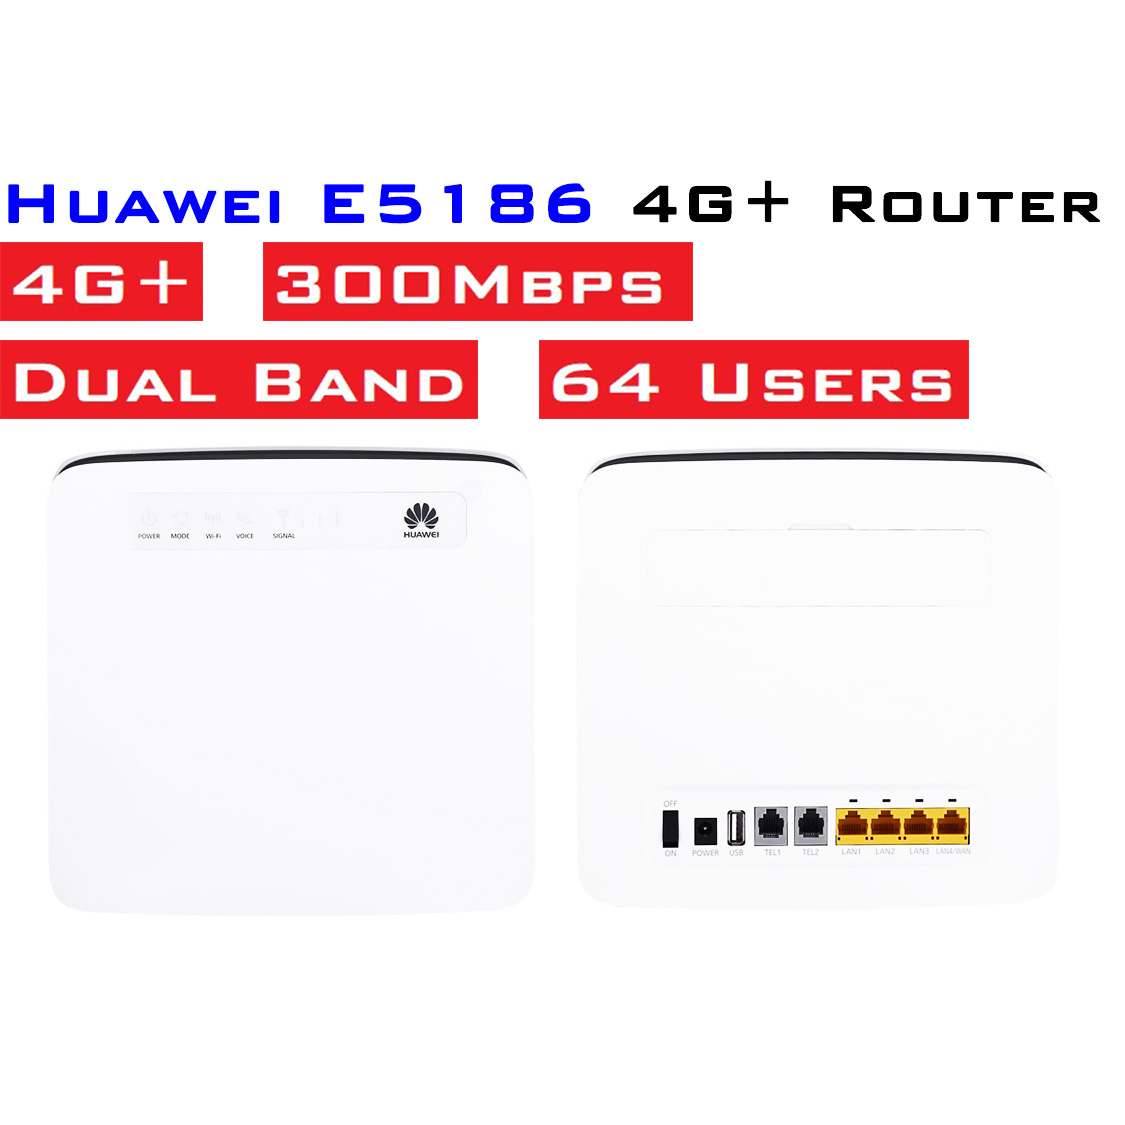 E5186 Huawei 4G+ dual band Router website - MY Mobile Signal